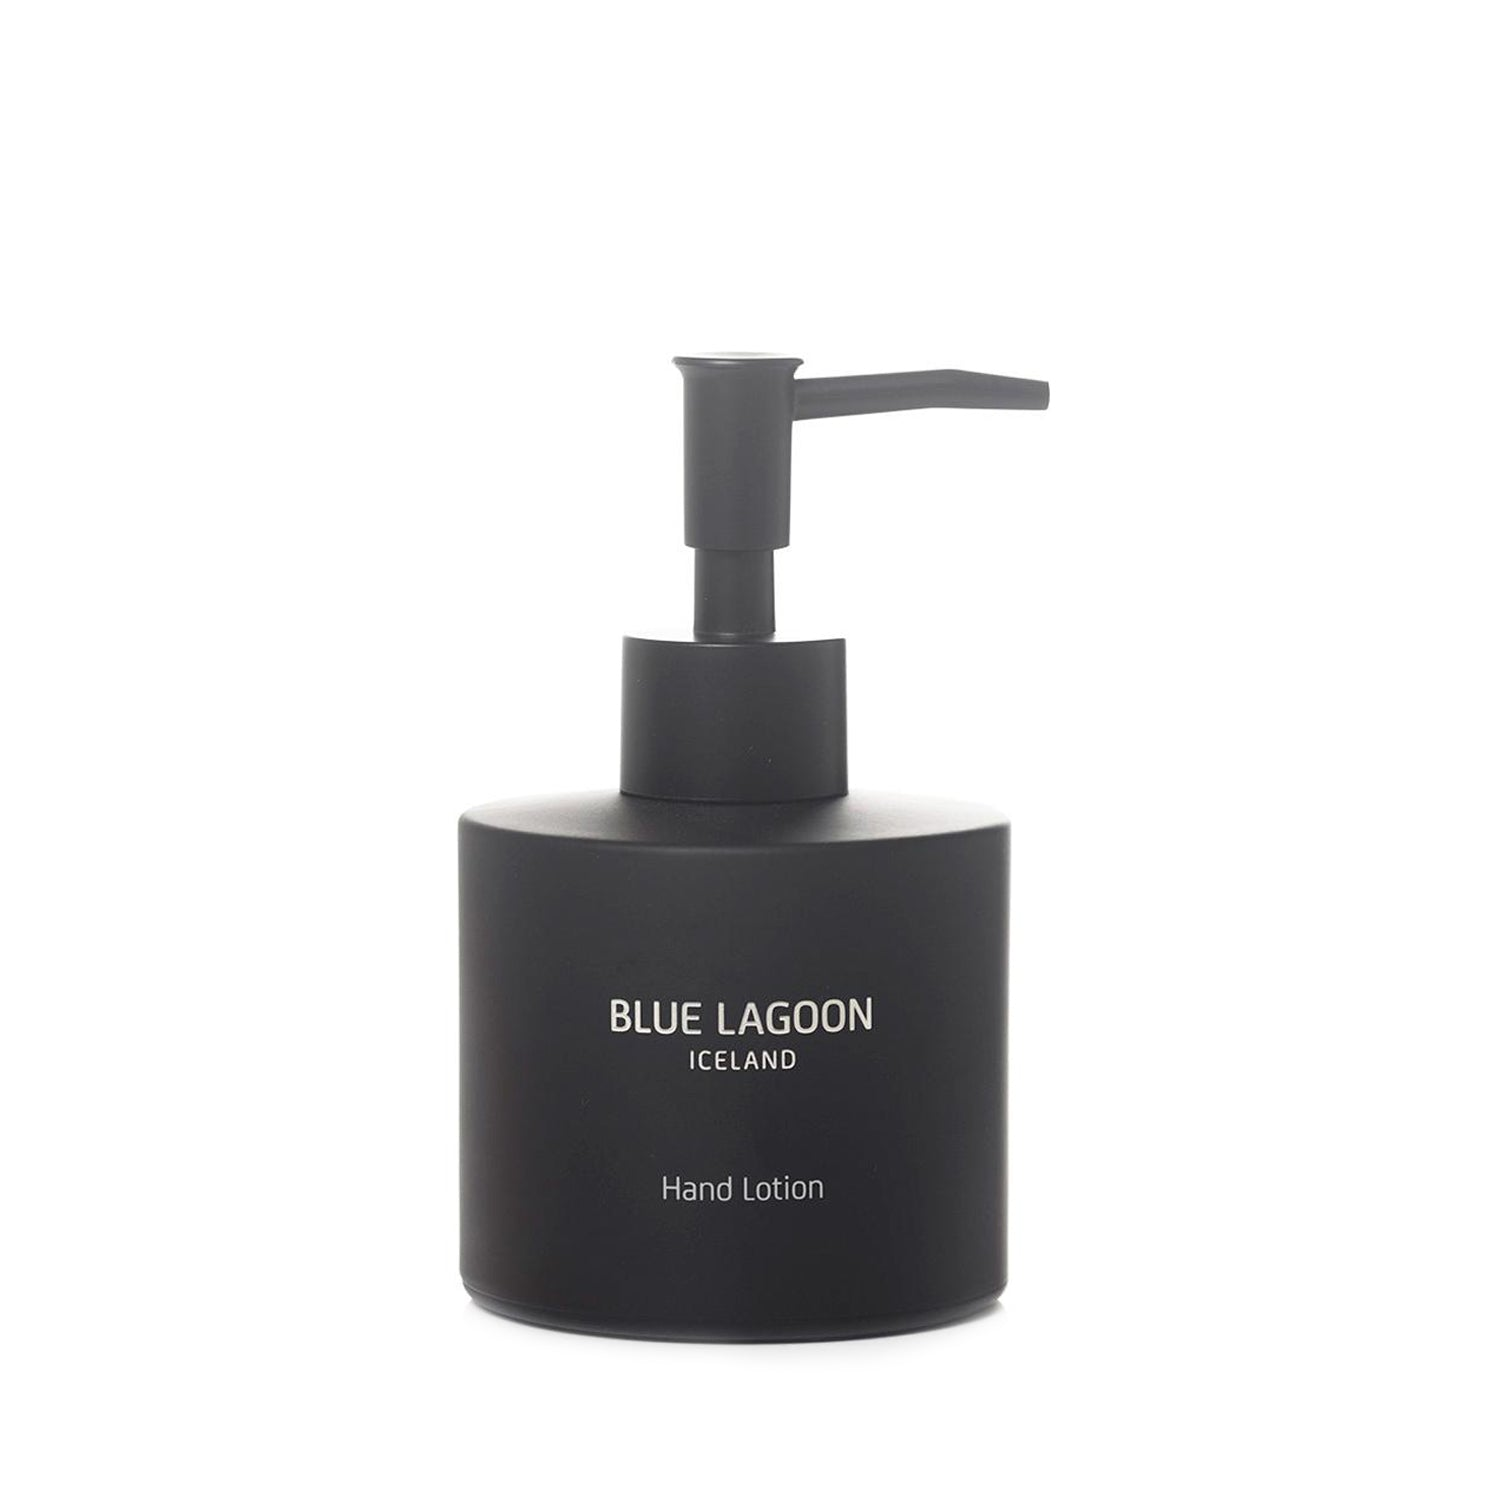 Blue Lagoon Hand Lotion